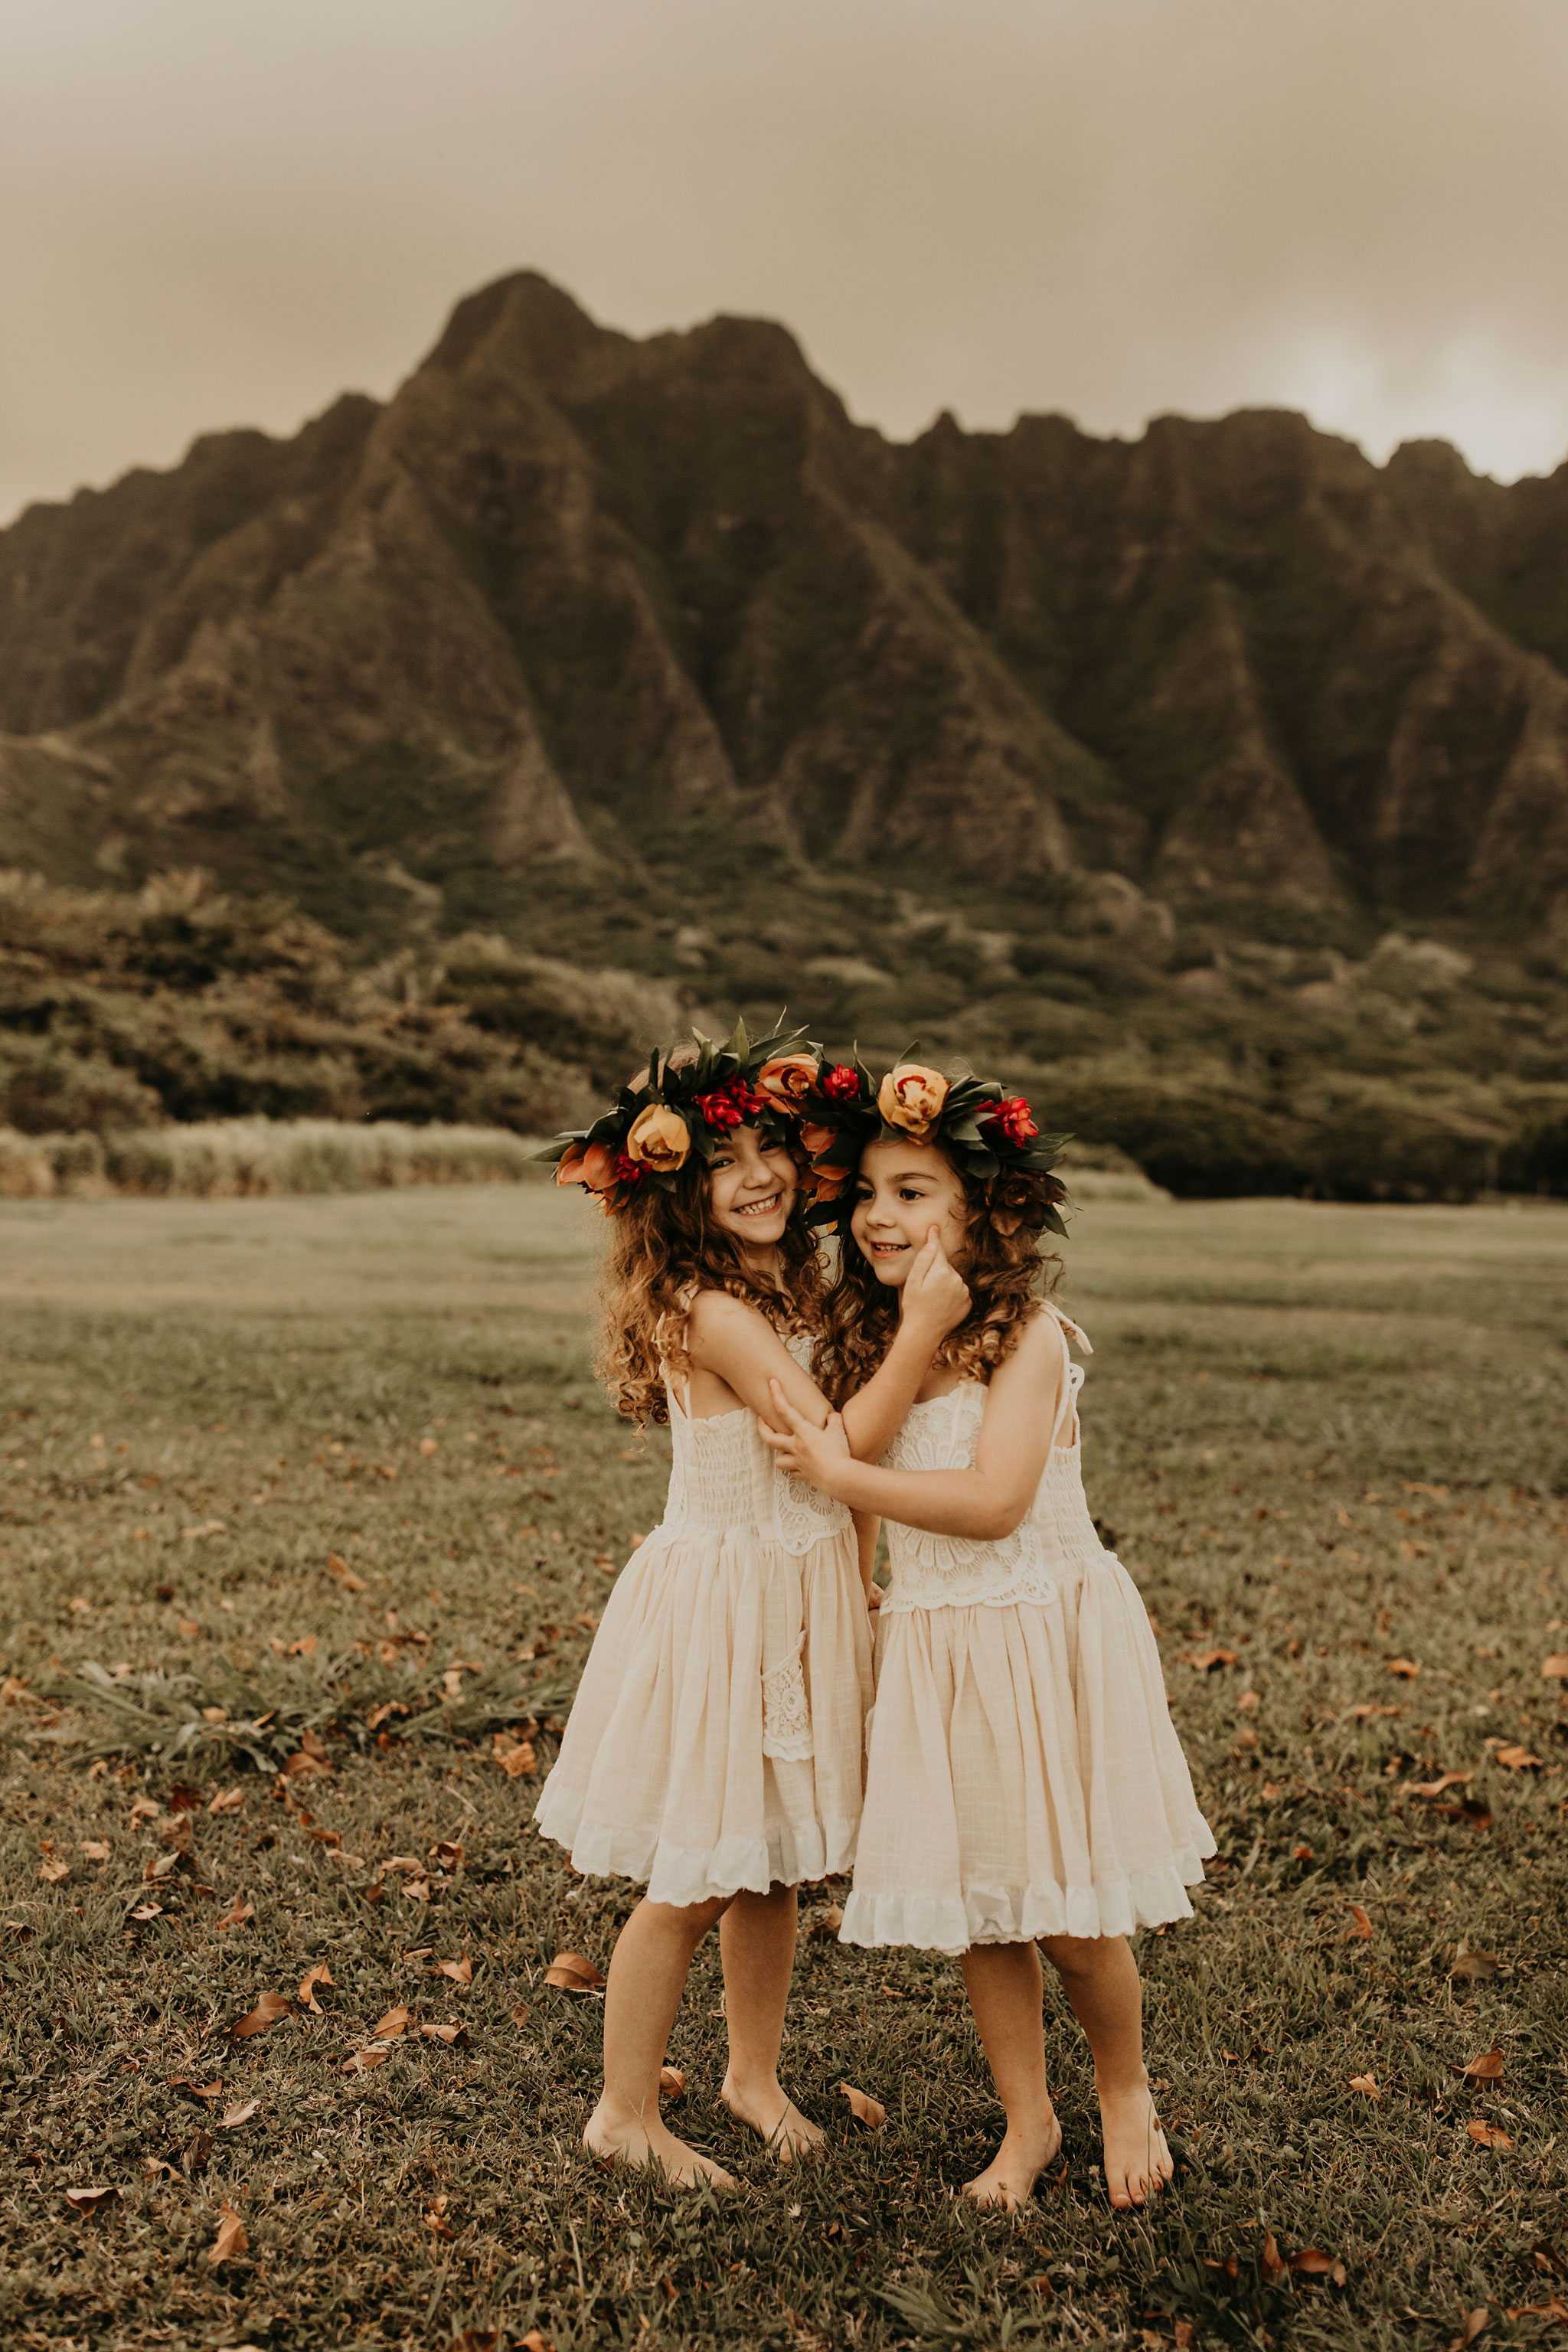 oahu-hawaoo-family-photos-photographer-photography-08.jpg